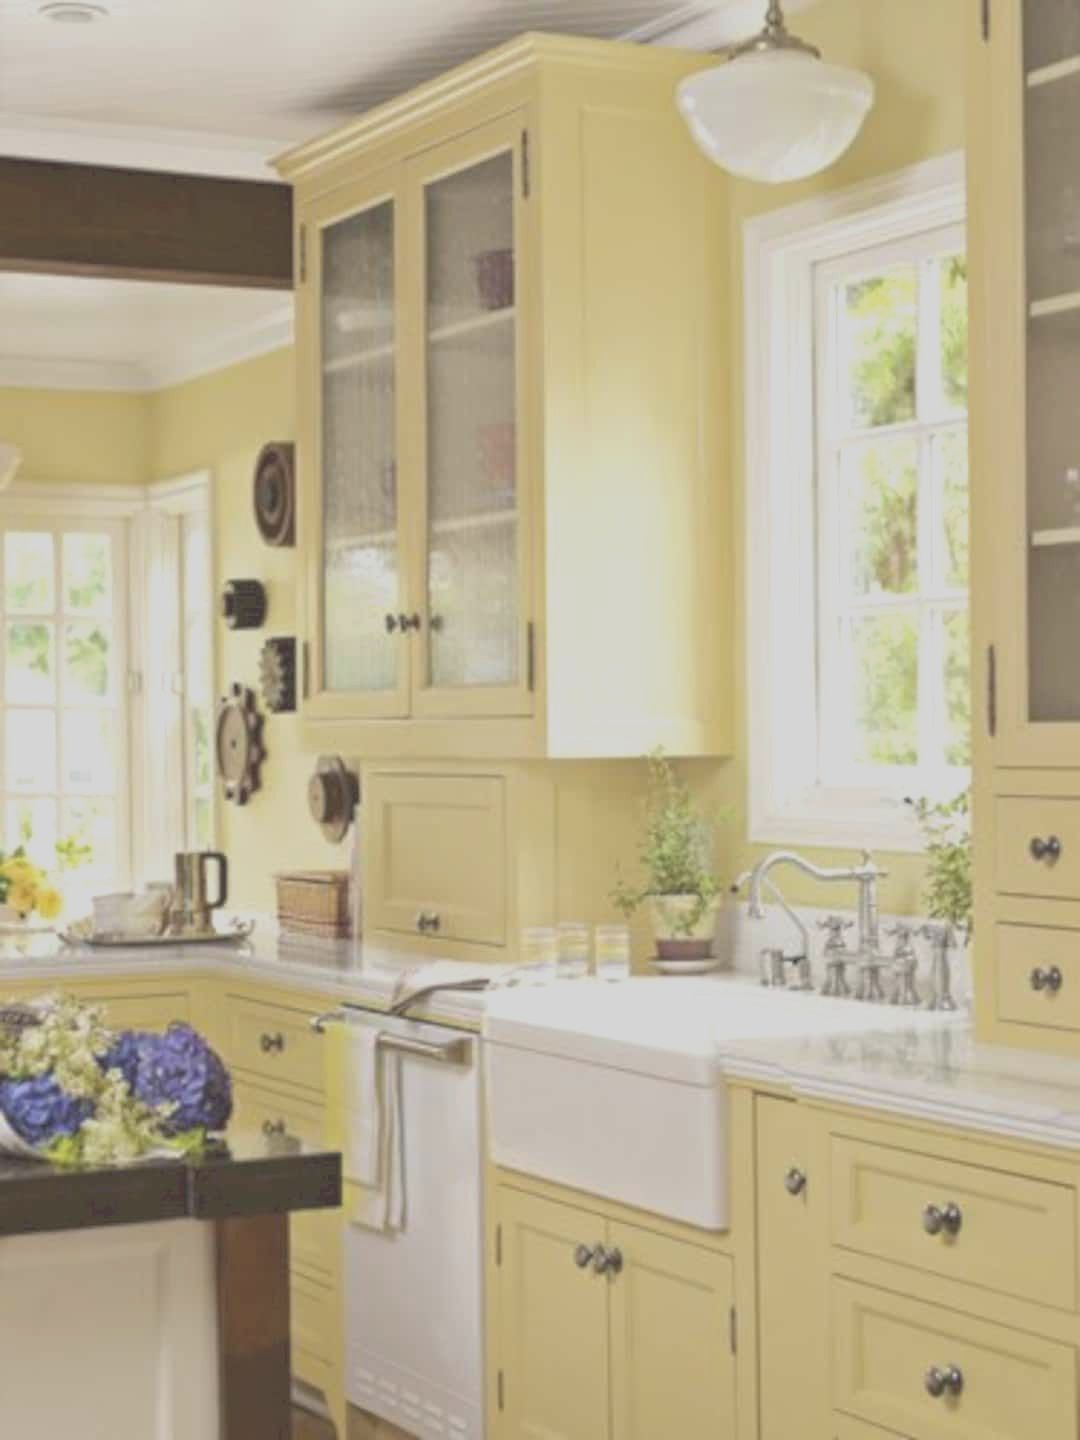 15 Gorgeous Yellow Kitchen Designs In 2020 Yellow Kitchen Walls Yellow Kitchen Yellow Kitchen Decor